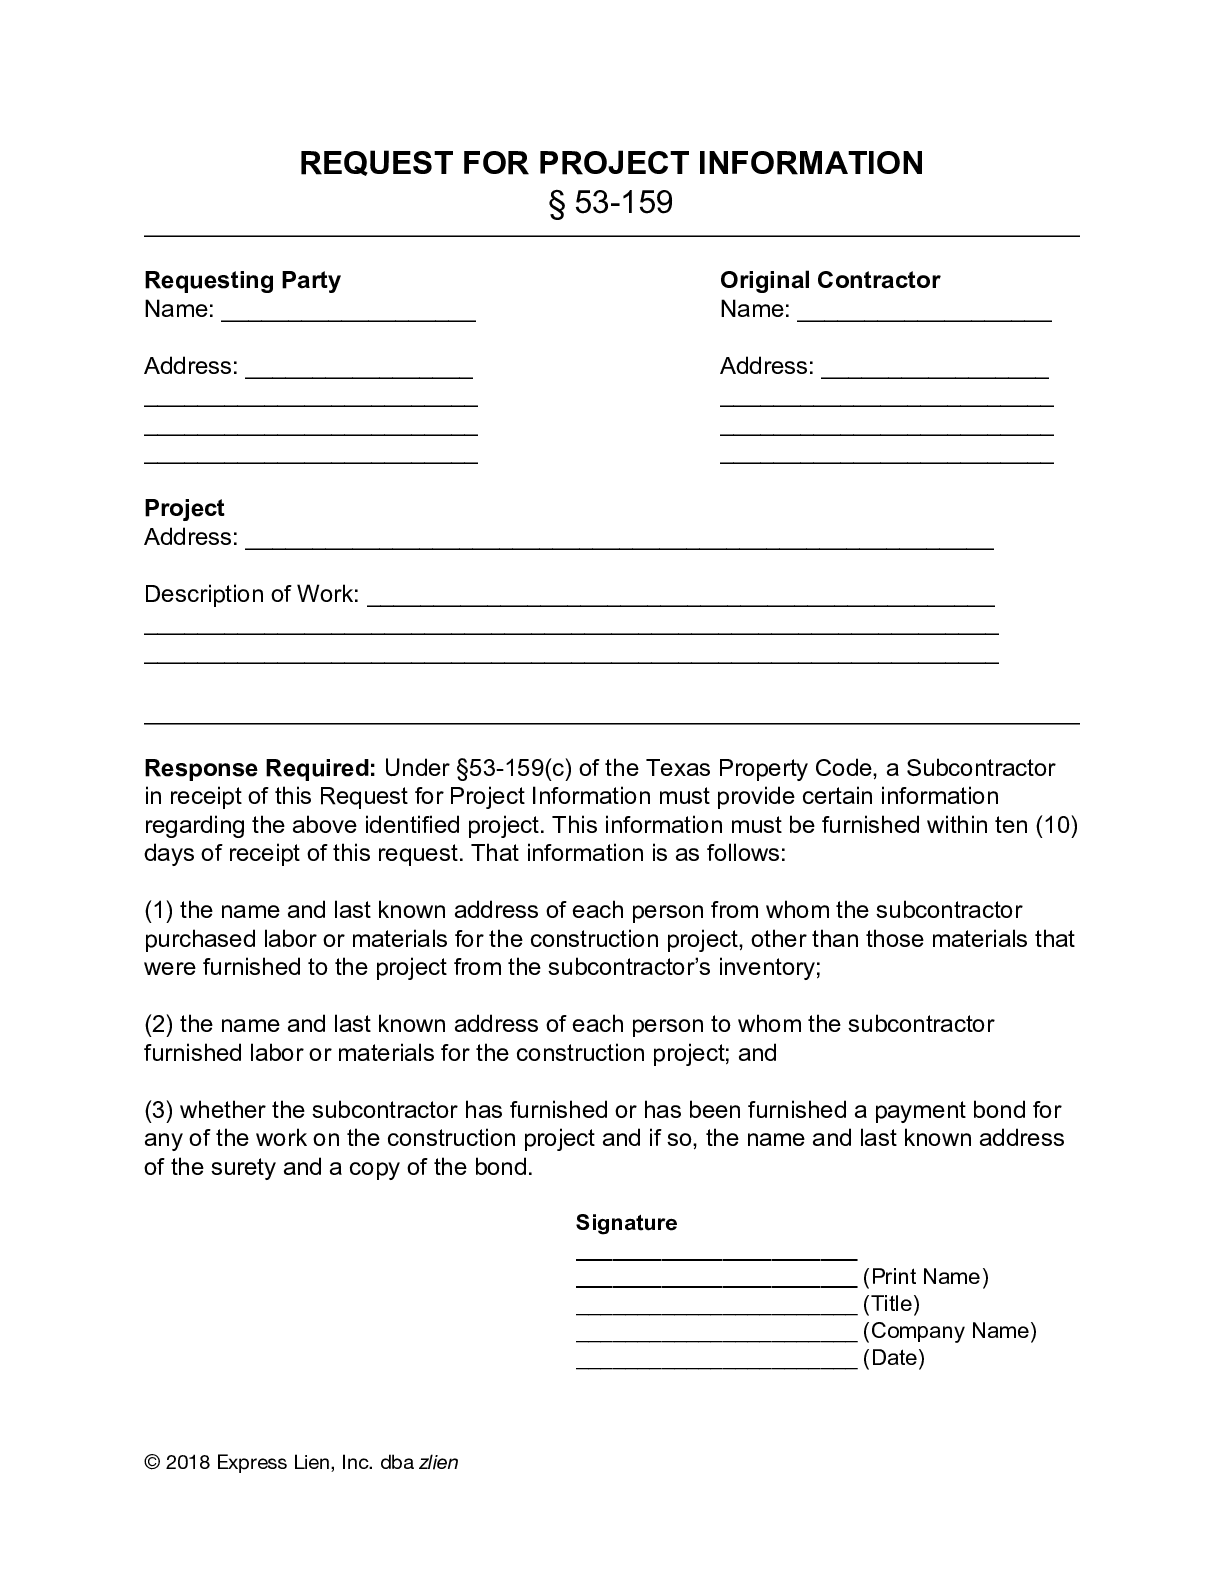 Texas Request For Project Information Form